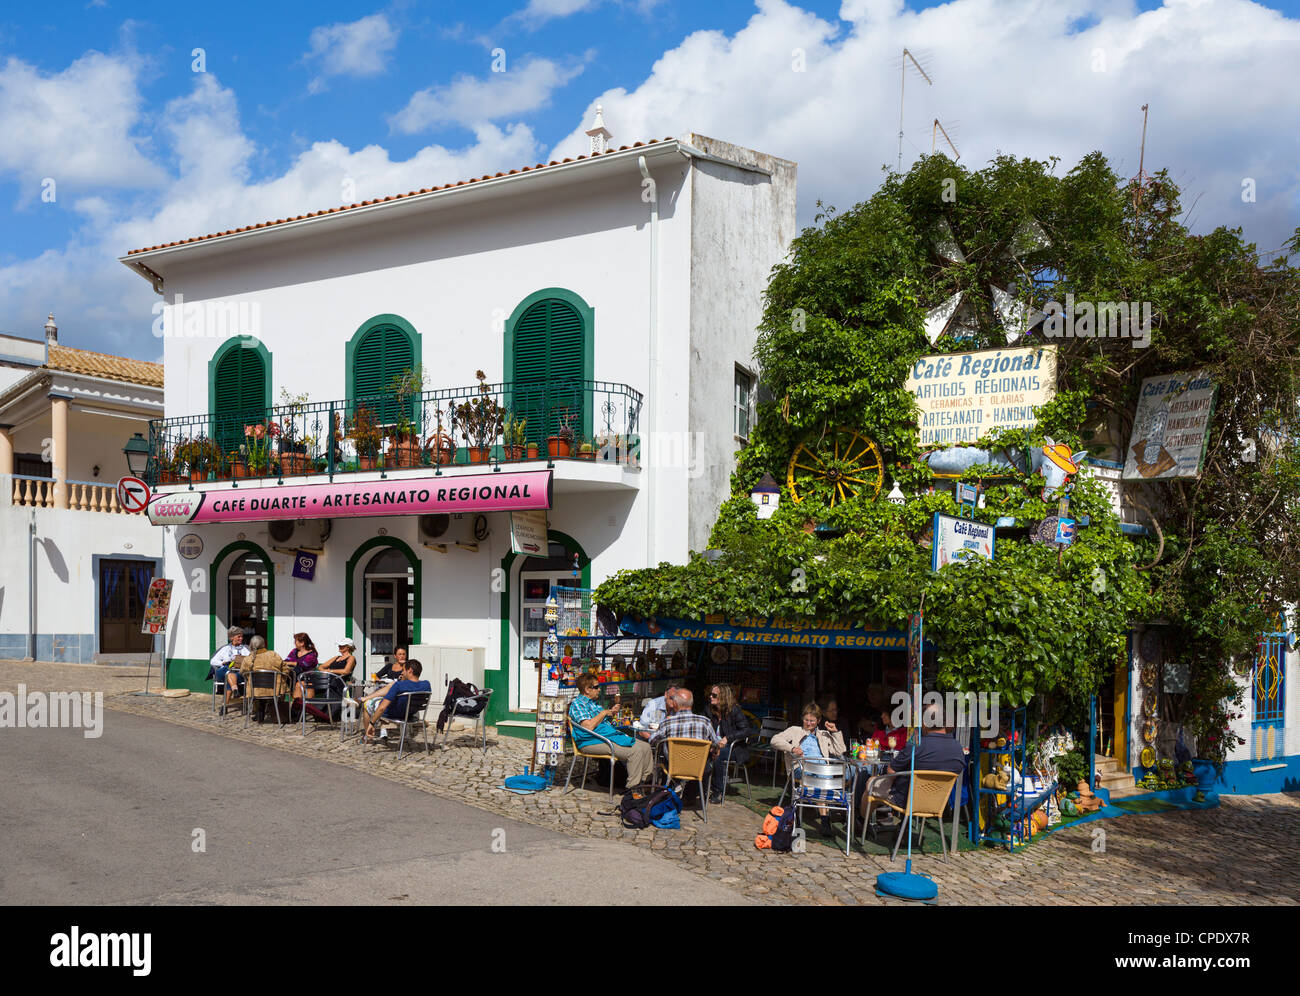 Cafe in the centre of the inland village of Alte with the village church to the left, Algarve, Portugal - Stock Image